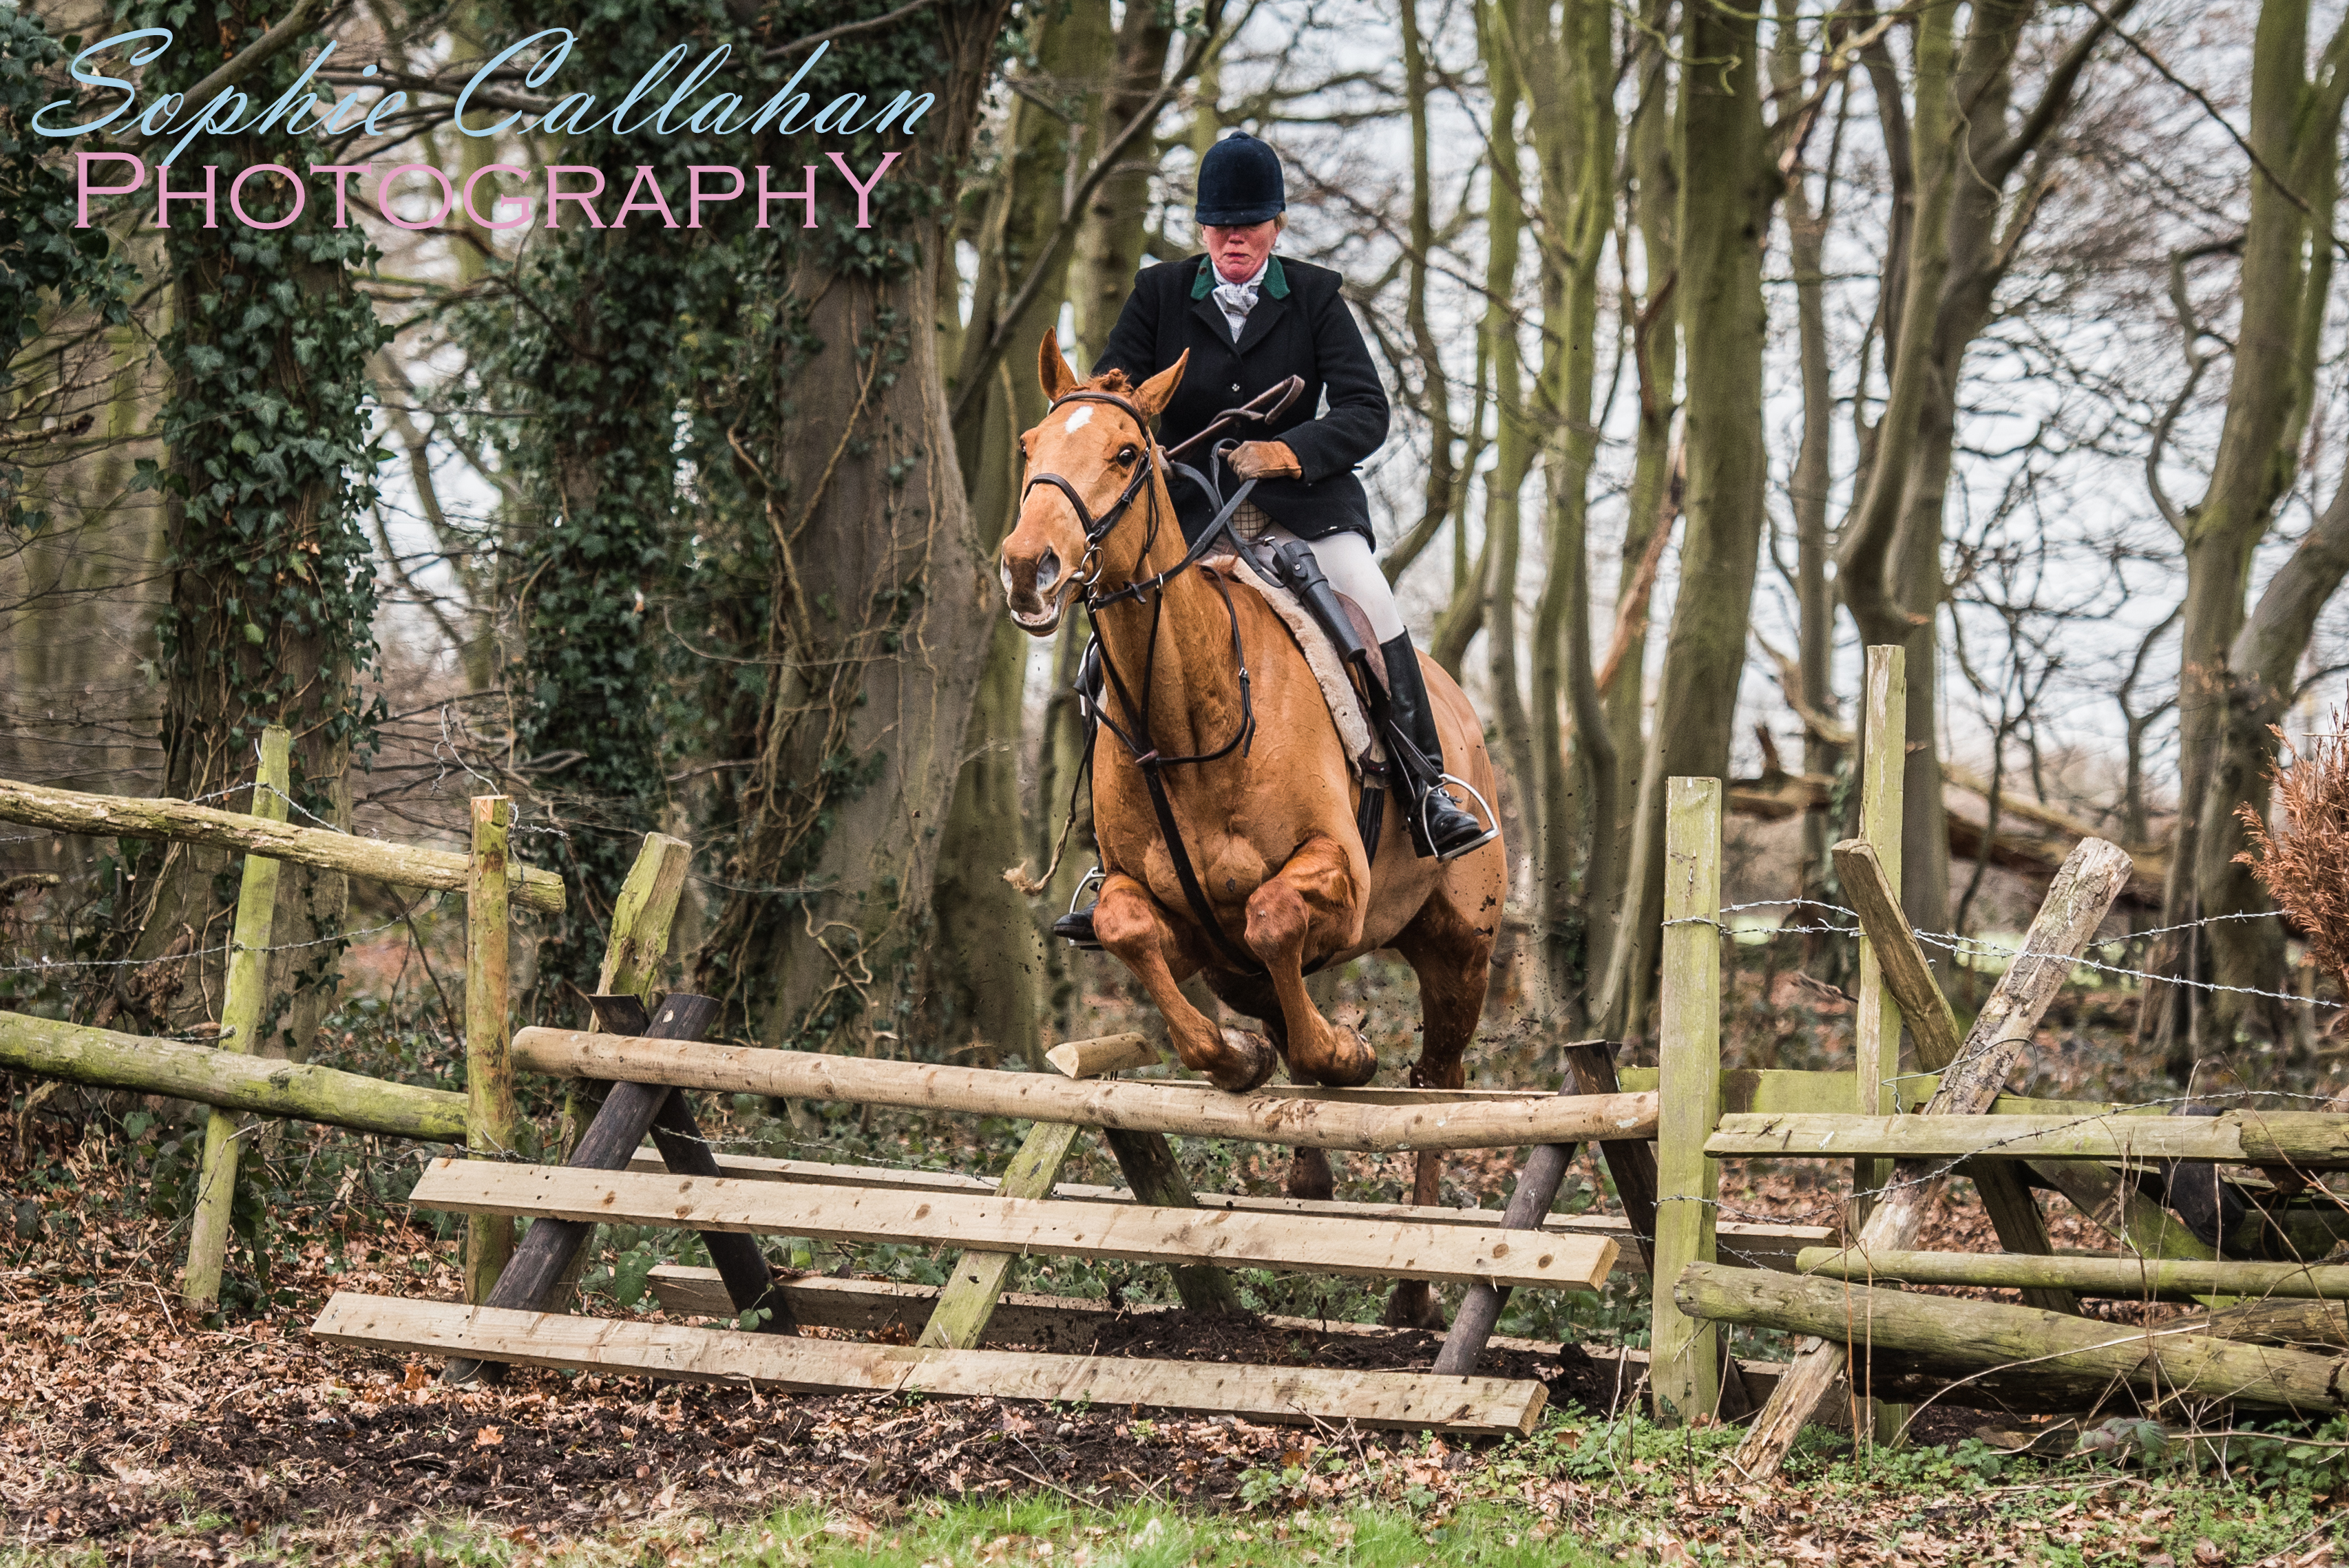 Essex Farmers & Union Hunt, Specialist UK Equine Portrait Photographer, Essex I via sophiecallahanblog.com I #equinephotography #photography #equineblogger